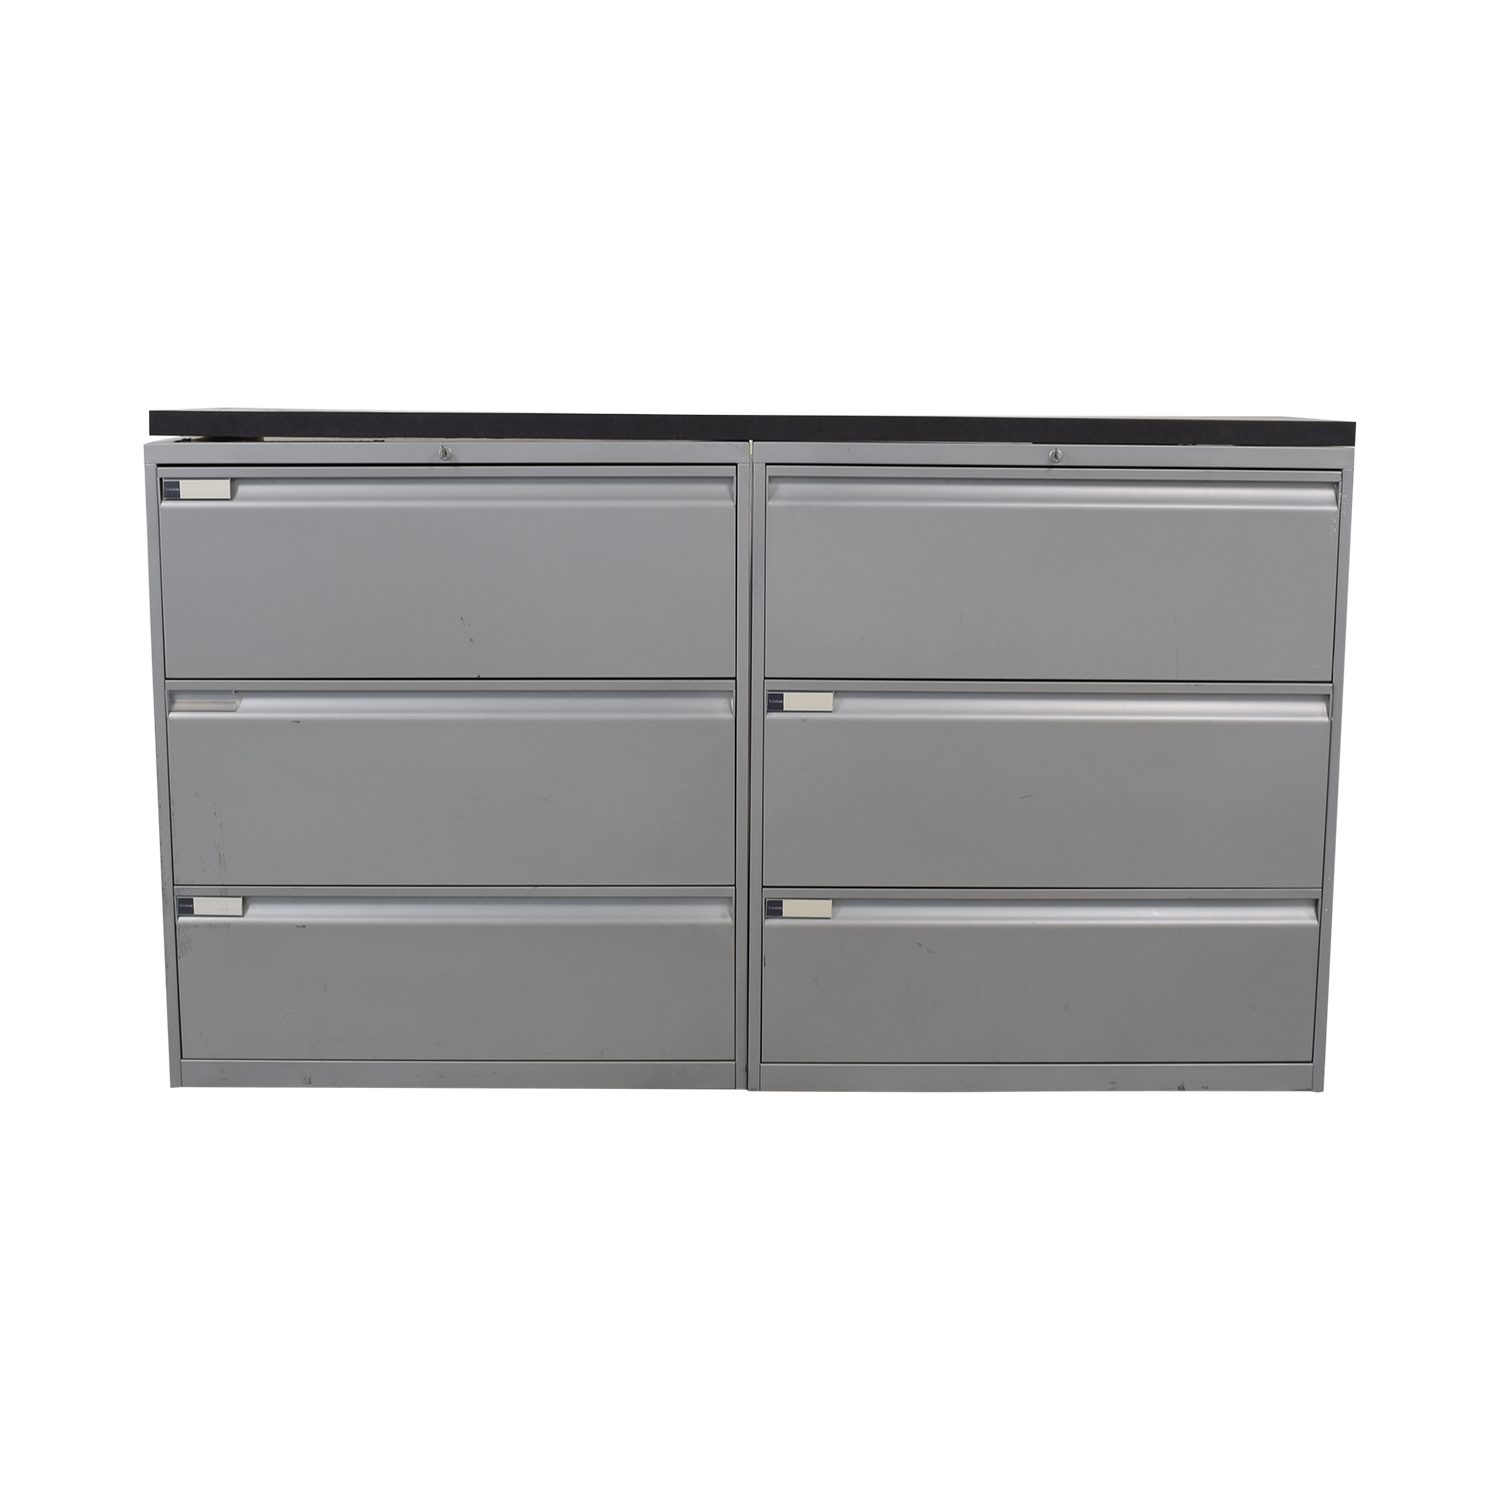 Teknion Teknion Filing Cabinet for sale